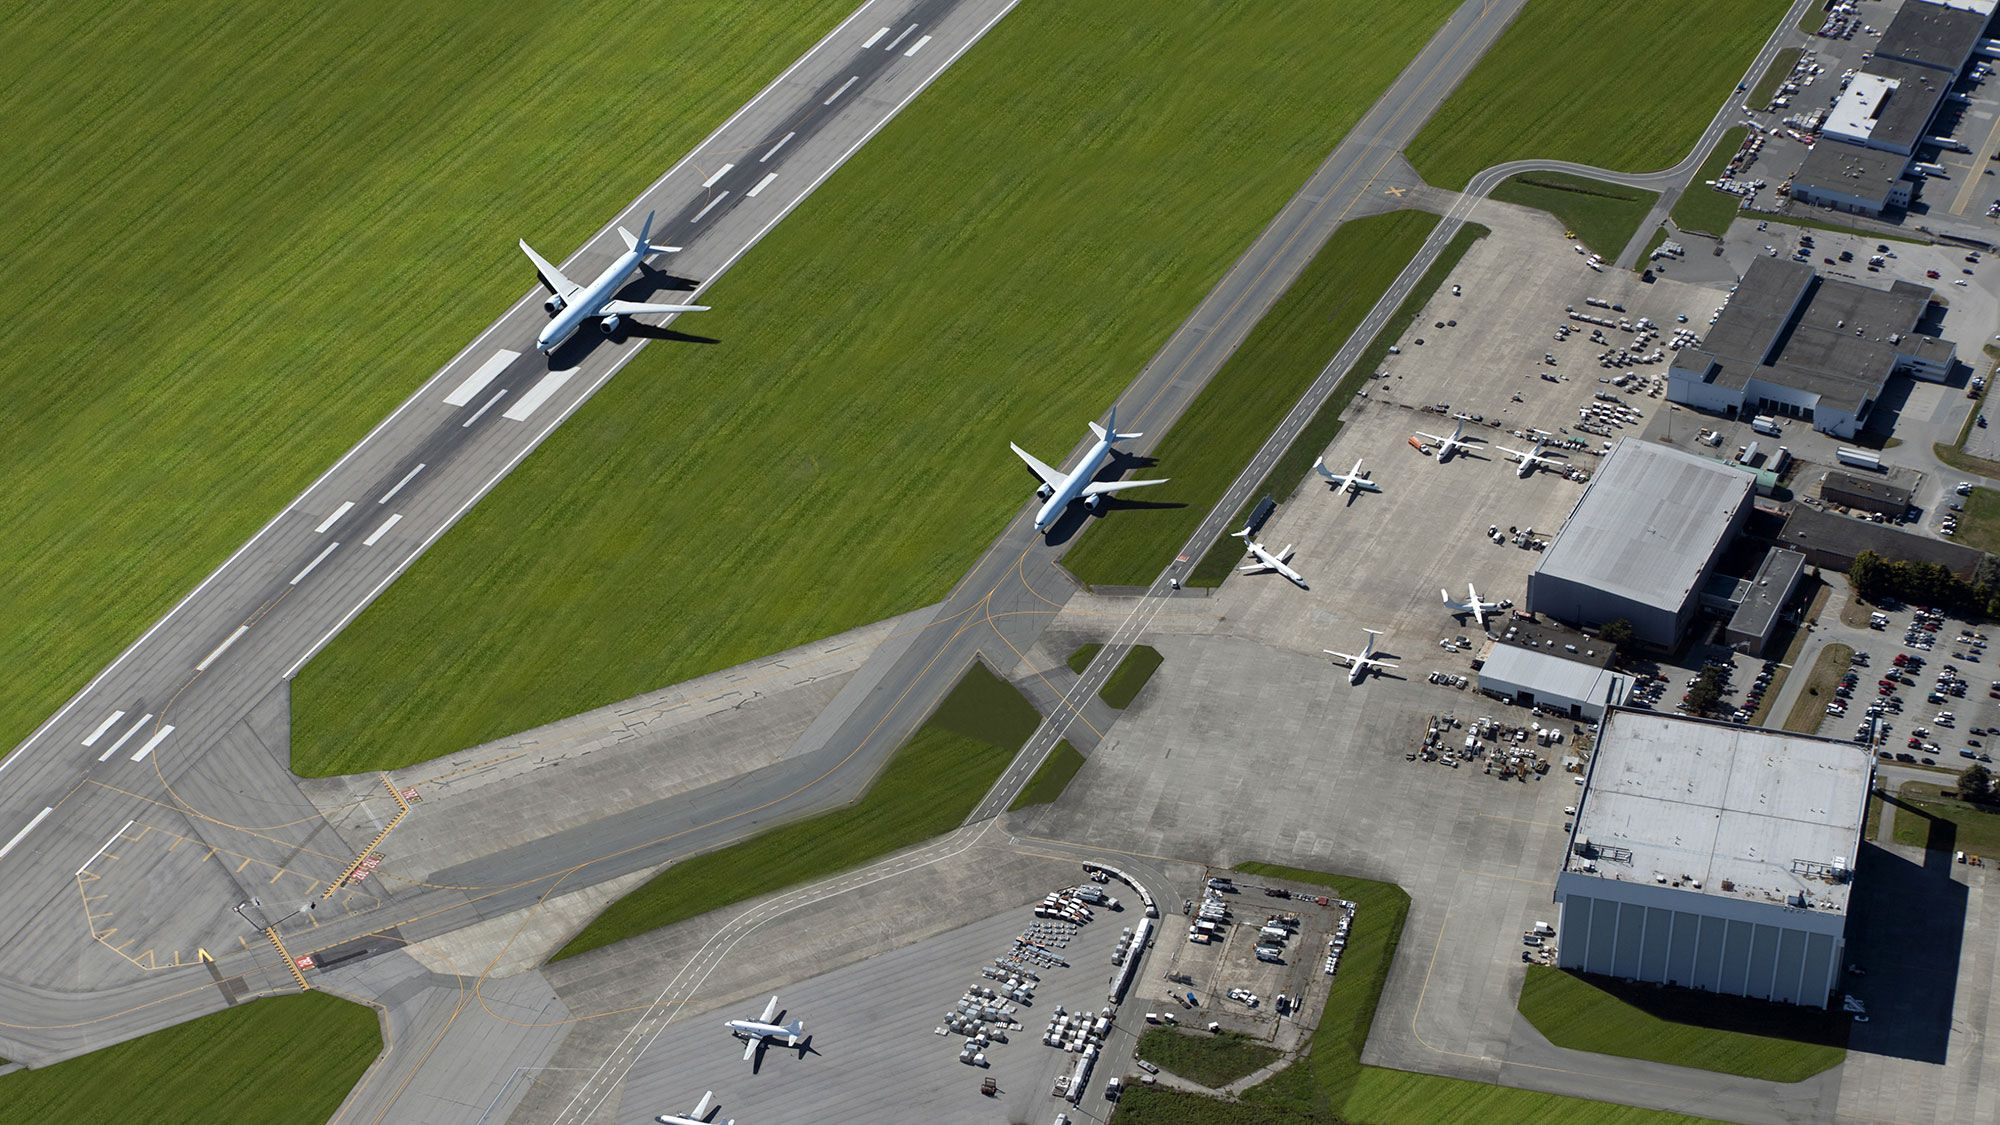 Airport - runways and airplanes